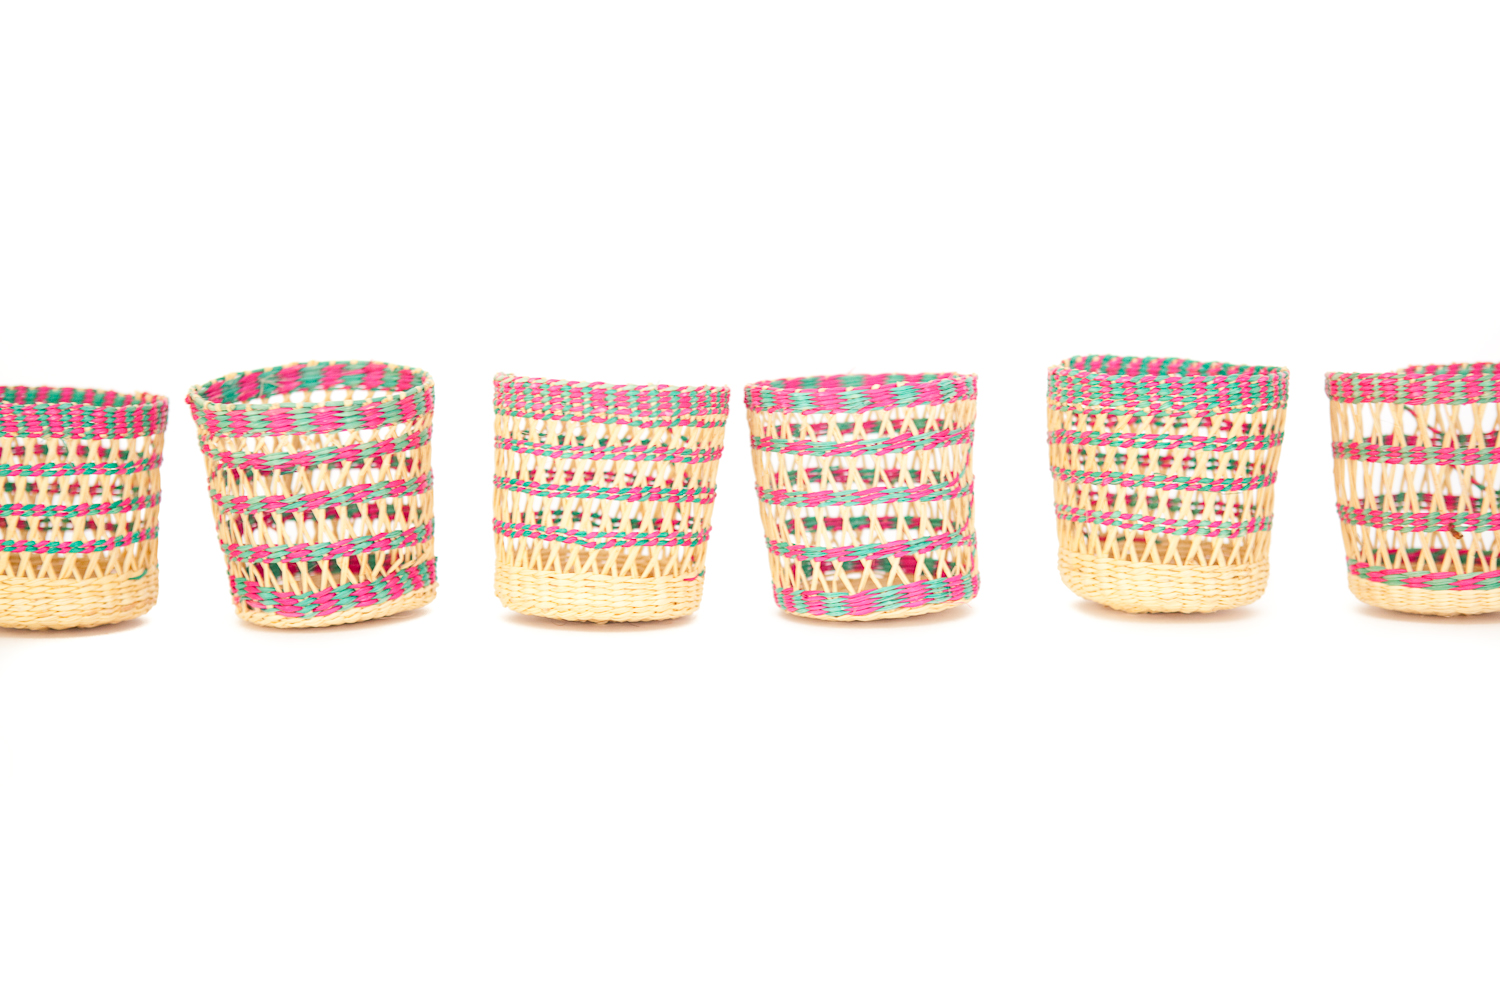 (PS-154) WOVEN PINK AND GREEN GLASS SLEEVES